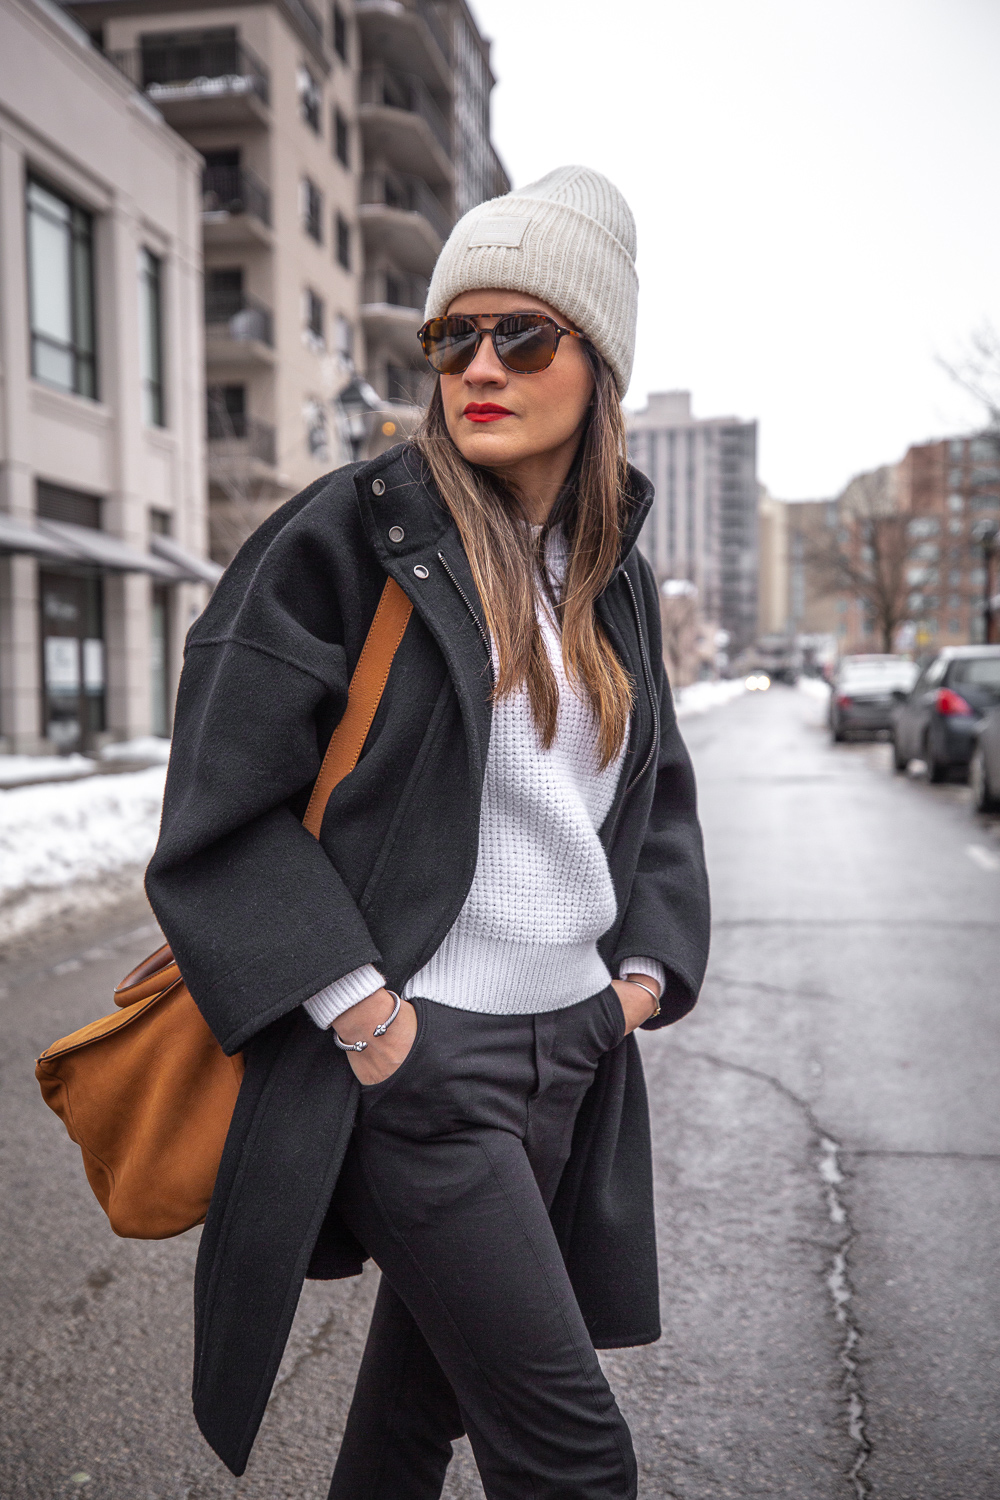 nathalie martin - vince wool coat, acne studios white sweater, pansy beanie, frank and eileen trouser joggers, alexander wang lyndon boots, givenchy medium pandora, bonlook jerry glasses, pinterest @woahstyle_7280.jpg